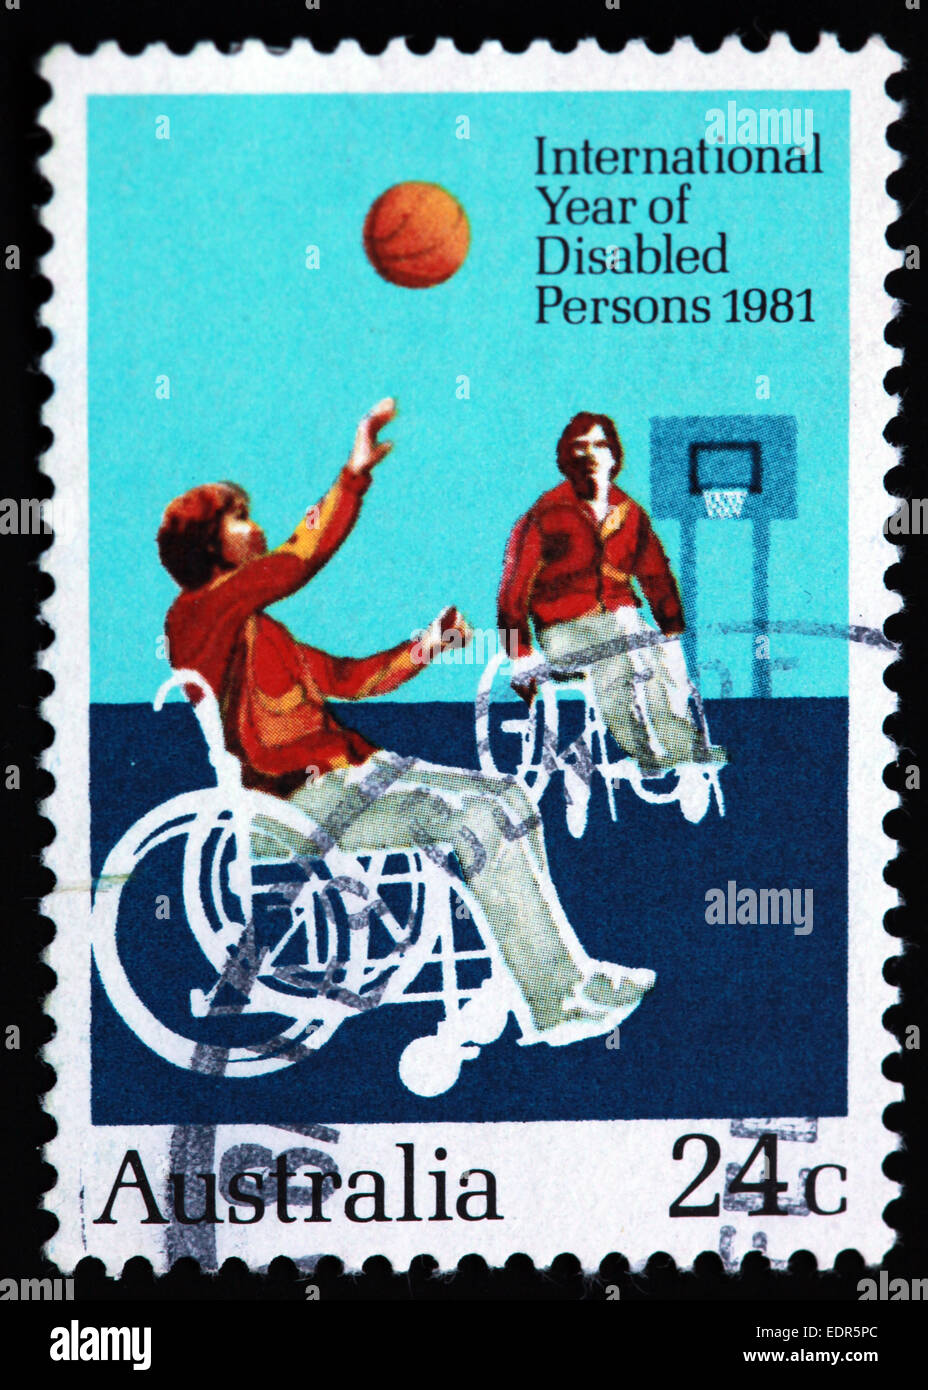 Wheelchair,Basketball,disability,throwing,throw,into,net,Used and Postmarked,Used,and,postmarked,perforated,Australia,stamp,Used,and,postmarked,Australia,Austrailian,Stamp,post,posting,mail,hobby,perforation,mark,postage,stamp,print,stamp,cancelled,stamp,payment,correspondence,post,Gotonysmith,post,posting,adaptive,adaptive sports,parasports,mail,hobby,perforation,mark,postage,physical,mental,permanent,temporary stamp,sport,playing,taking part,disabled,people,Disabled People,persons,disabled persons,Paralympic movement,Paralympic,movement,price,history,retro,Australian,Vintage,delivery,date,relationship,communication,Oz,Australia,DownUnder,classic rare unique Austrailian financial,investment,invest,value,British,empire,nation,canceled,printed on black background,close-up,closeup,close,up,sent,send,philately,mailing,shipping,postoffice,office,isolated,circa,special,colour,color,postmarked,marked,airmail,aged,antique,retro,cutting,historic,old,stamps,collection,stamp collection,album,Timbre,Sello,Stempel,Selo,Down Under,Black background